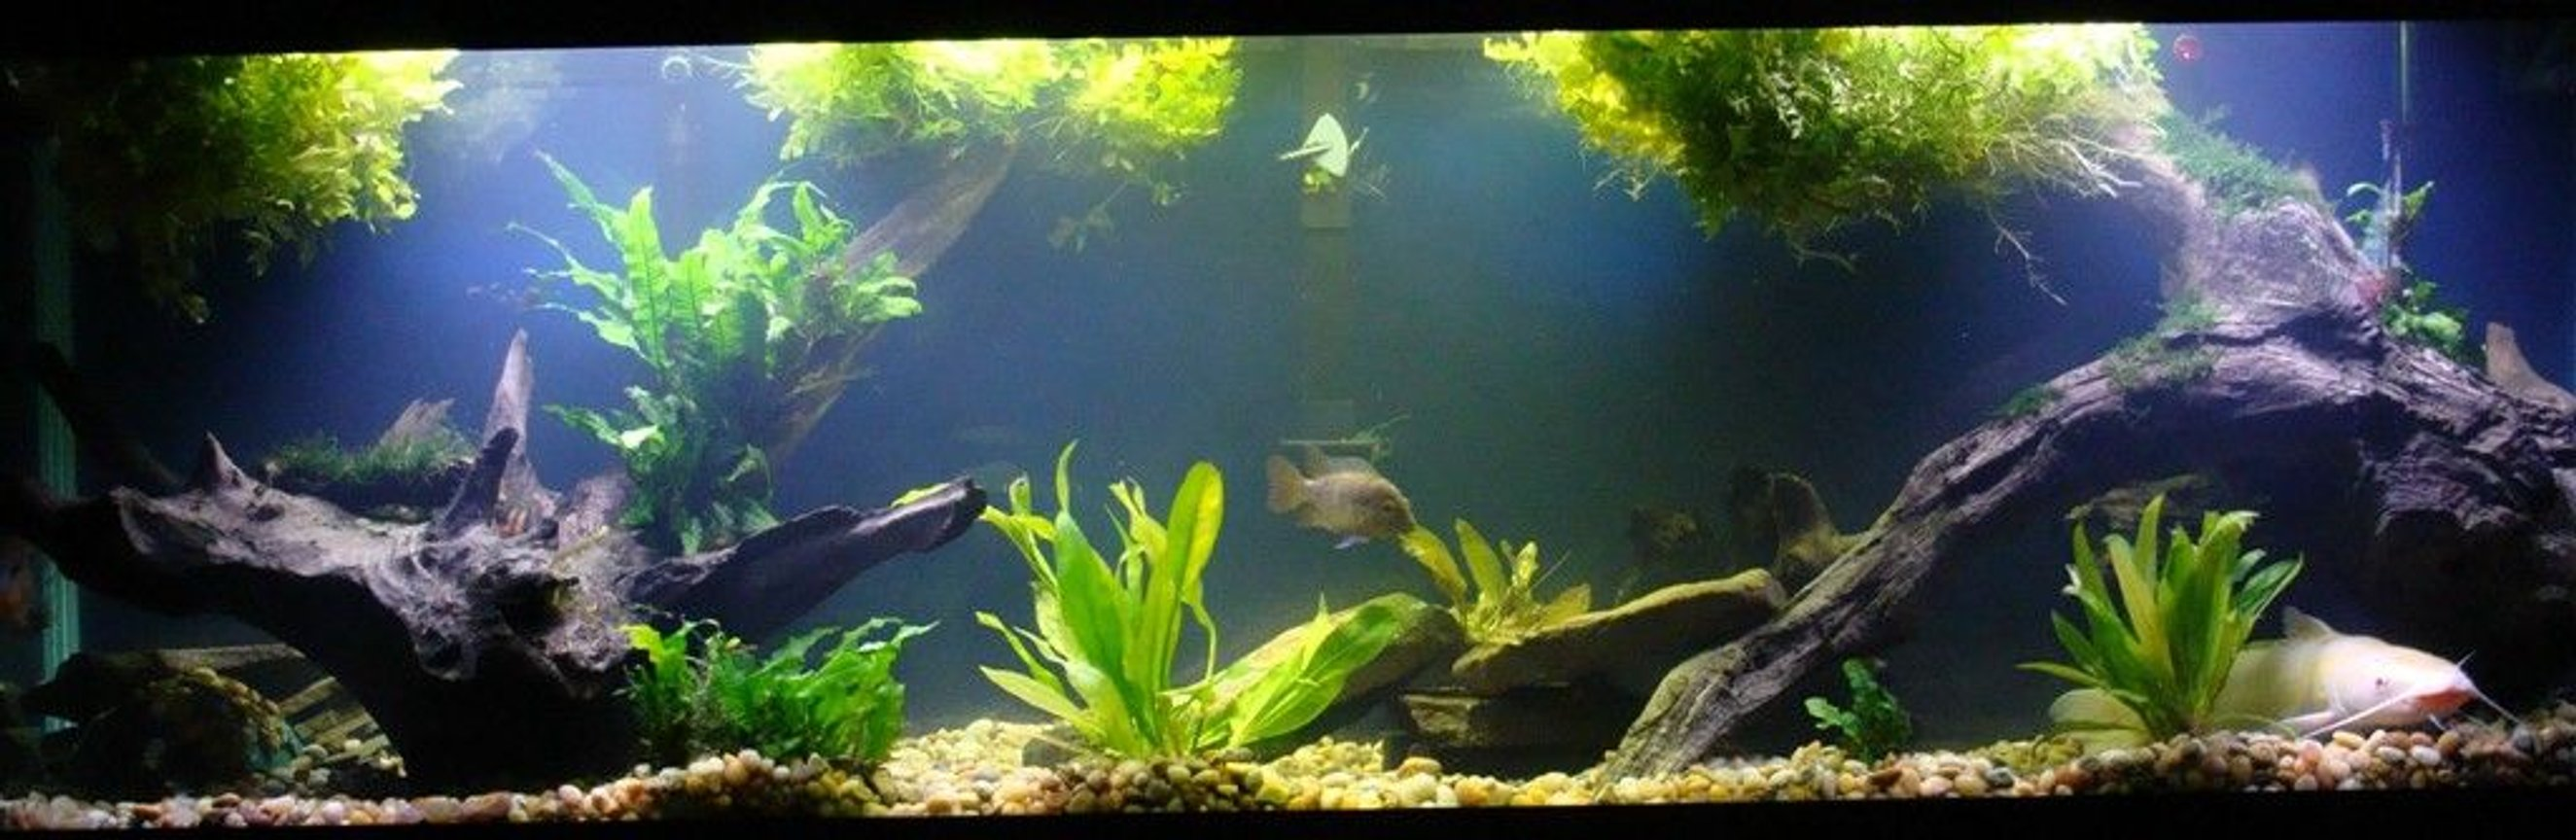 125 gallons planted tank (mostly live plants and fish) - 125g cichlid tank